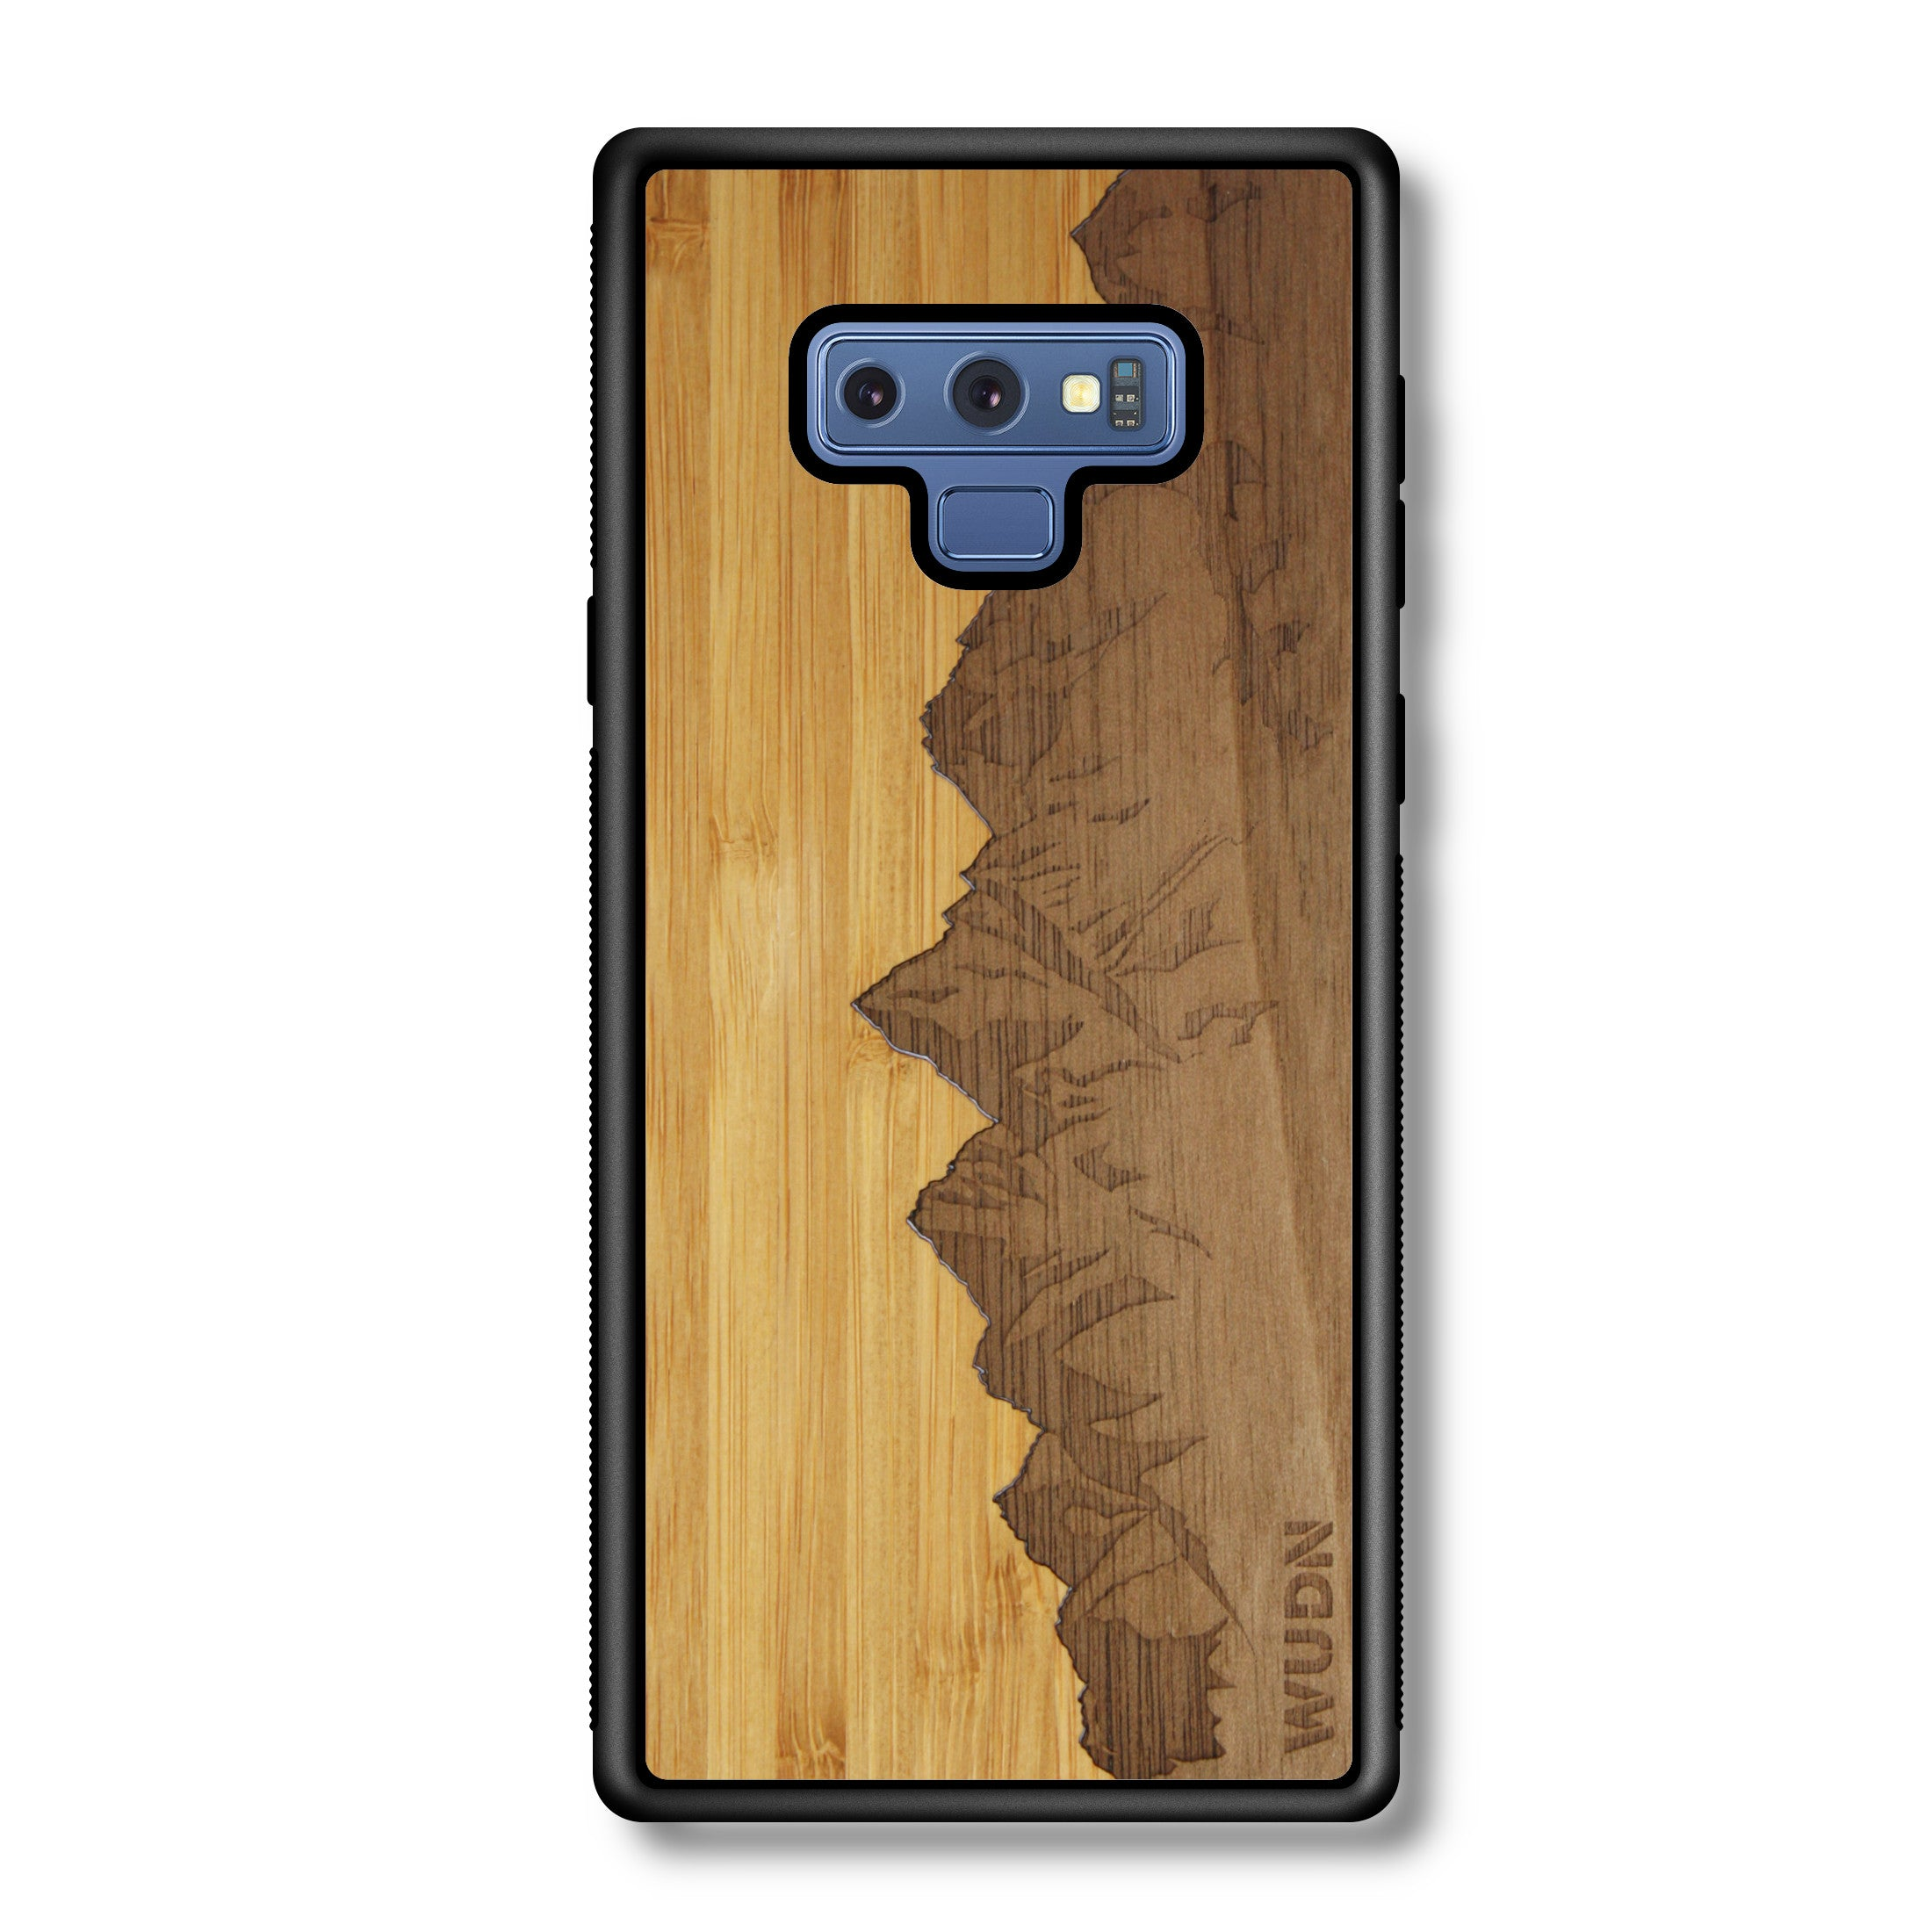 Slim Wooden Phone Case | Sawtooth Mountains Traveler, Cases by WUDN for Galaxy Note 9